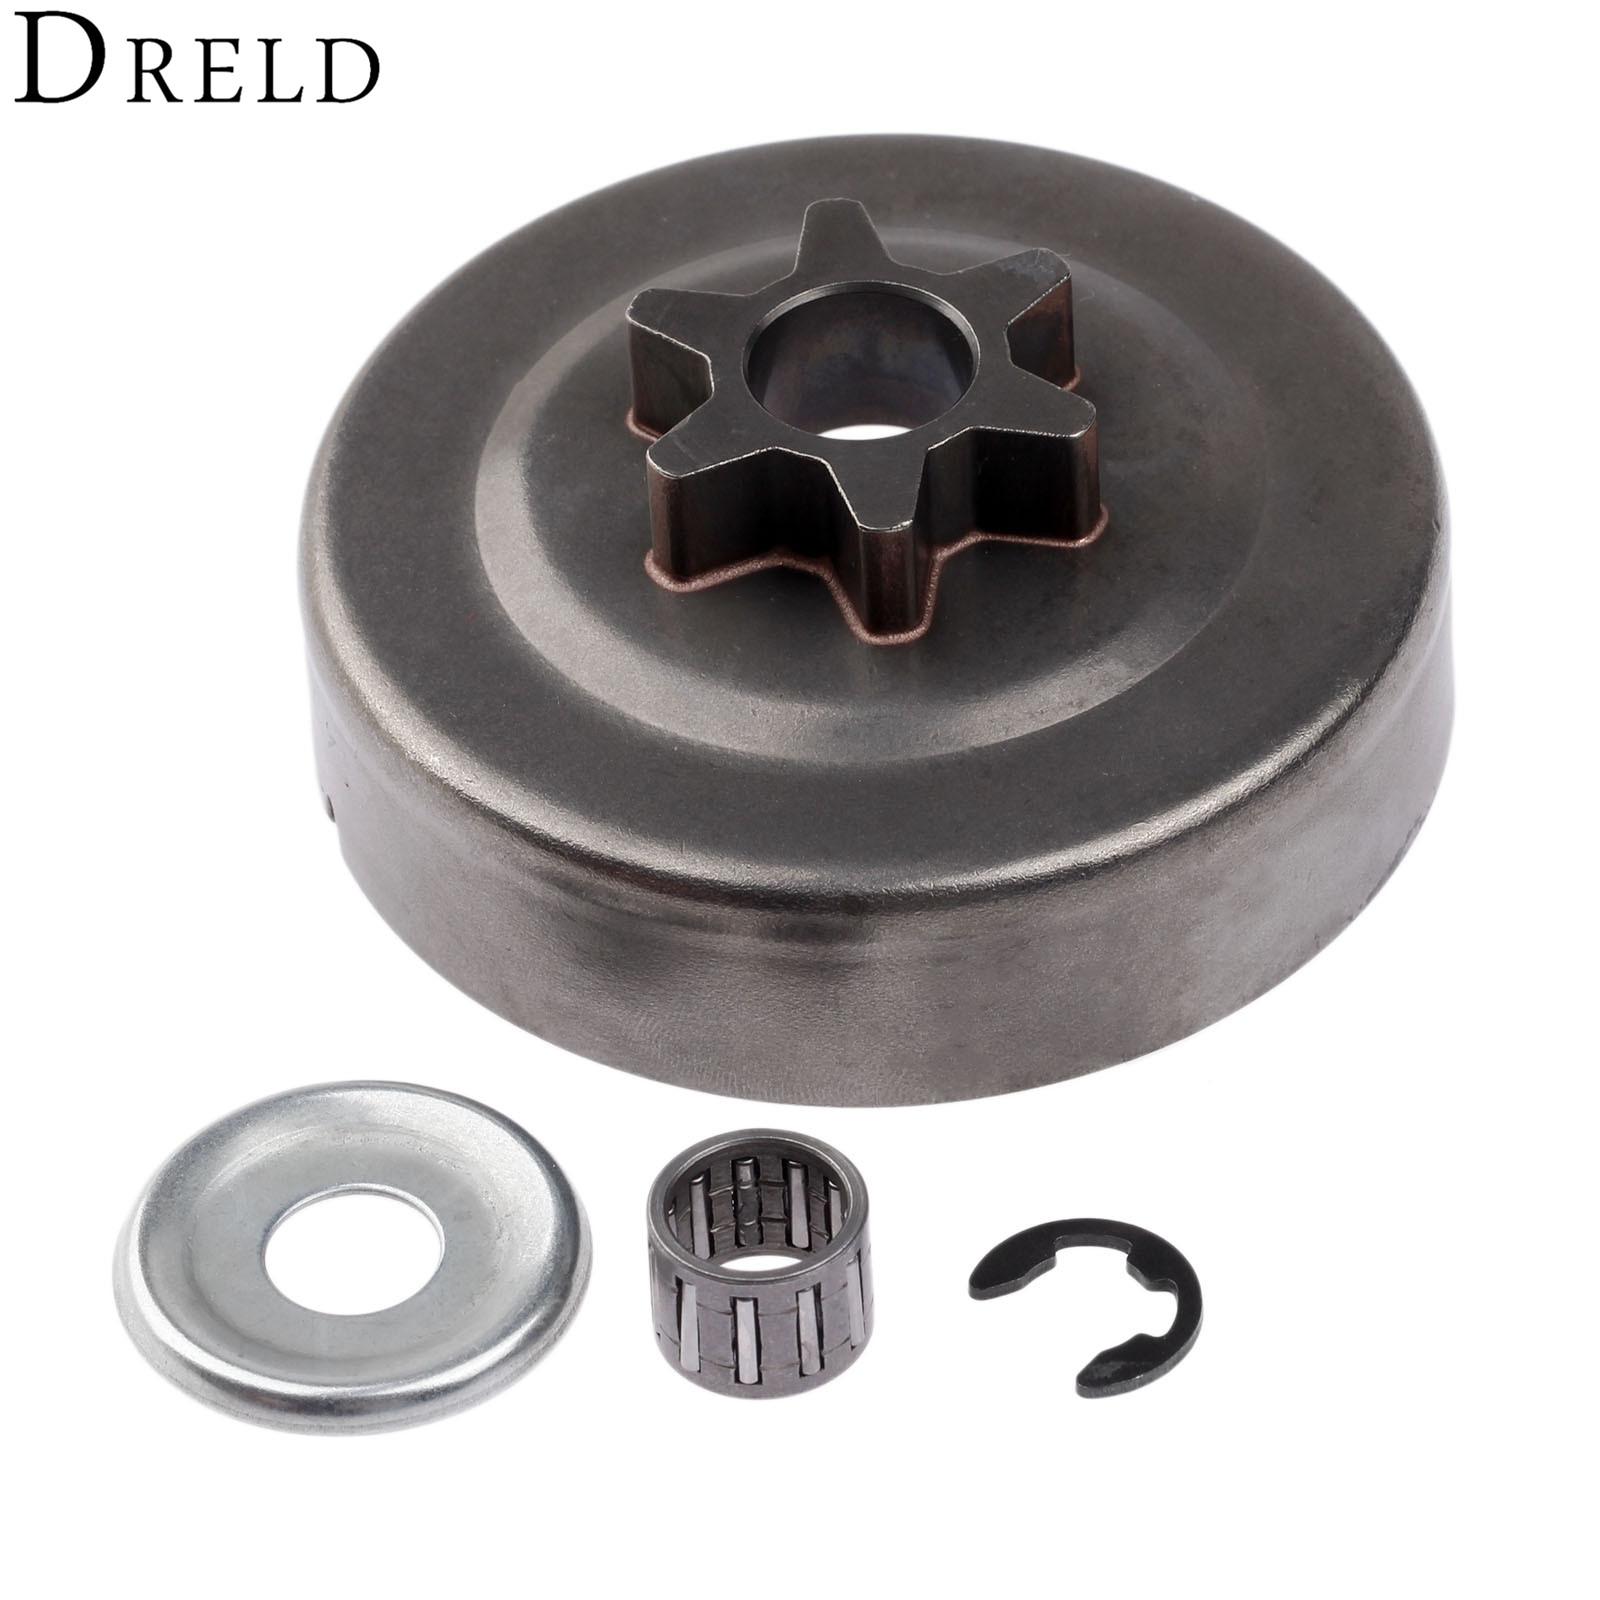 DRELD 3/8 6T Clutch Drum Sprocket Washer E-Clip Kit For STIHL Chainsaw 017 018 021 023 025 MS170 MS180 MS210 MS230 MS250 1123 image